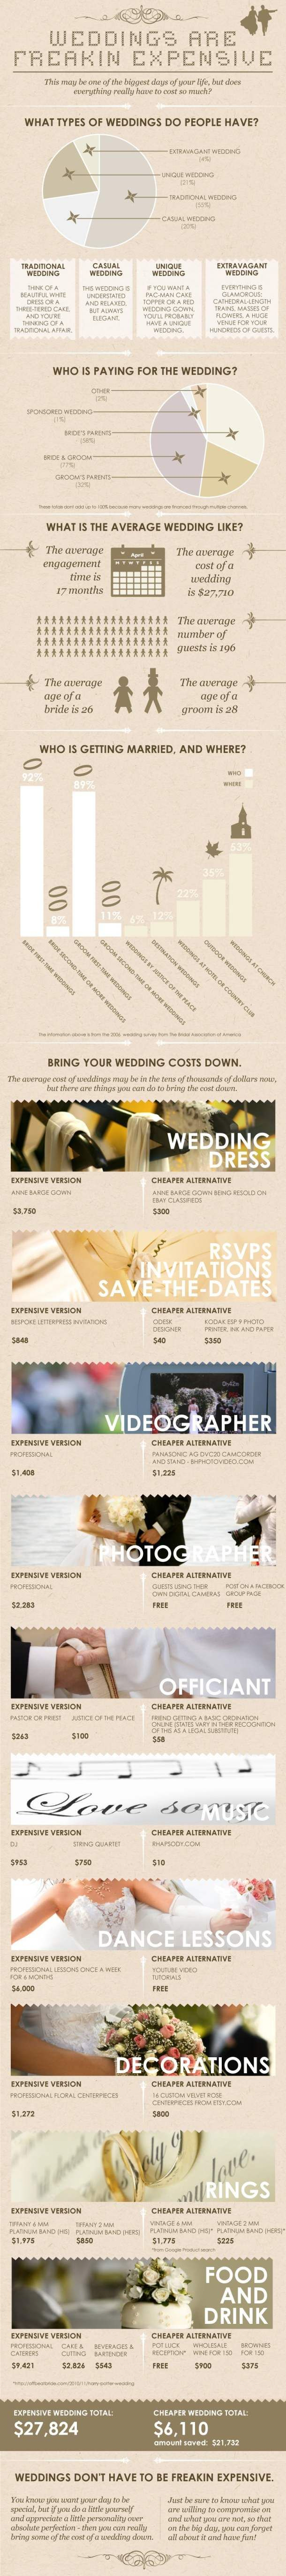 10 Great Wedding Planning Infographics You Will Need